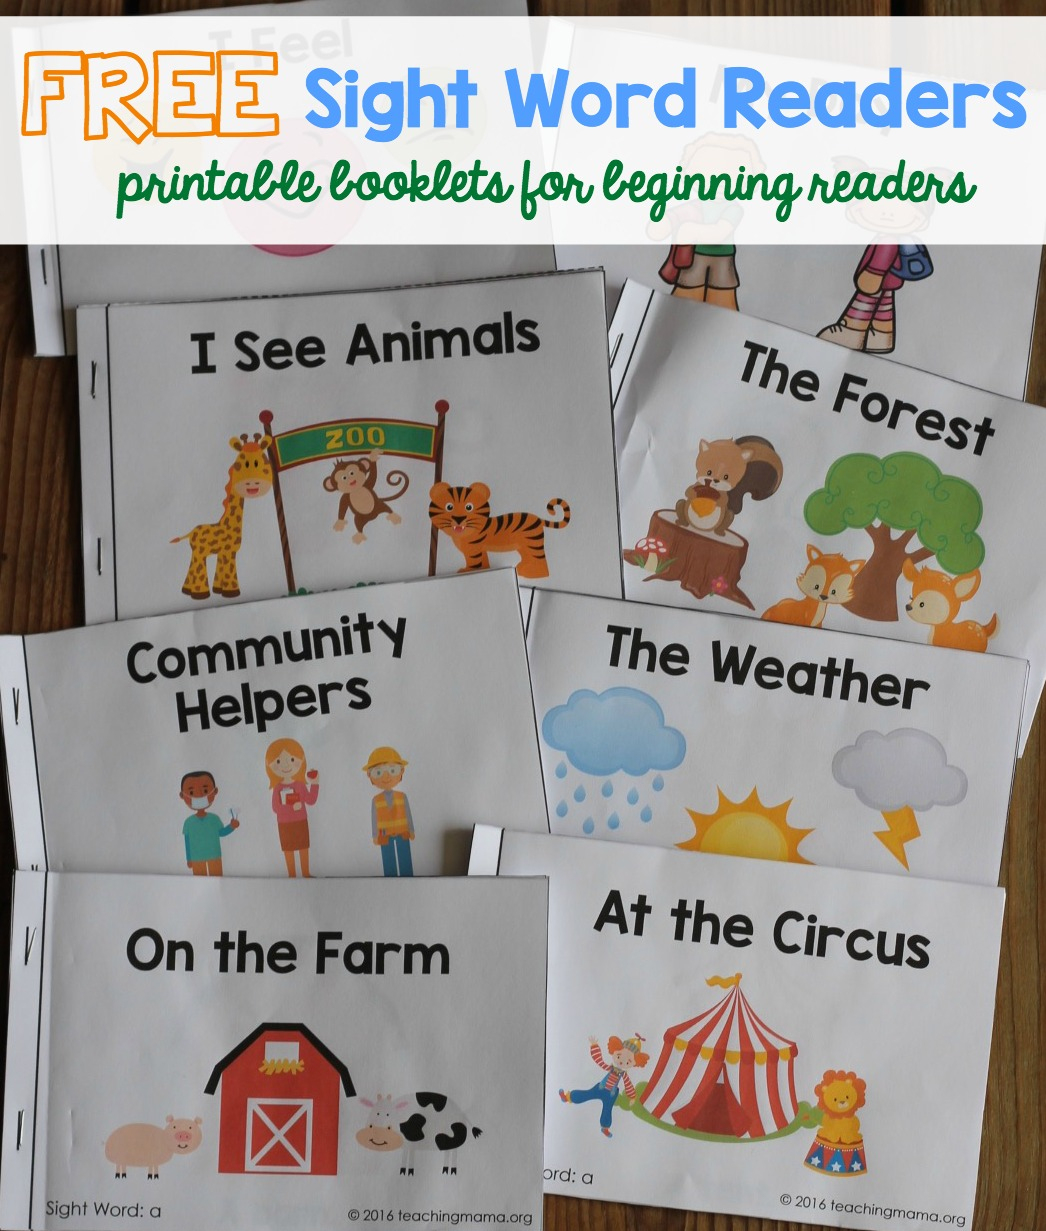 Sight Word Readers - Free Printable Pre K Reading Books